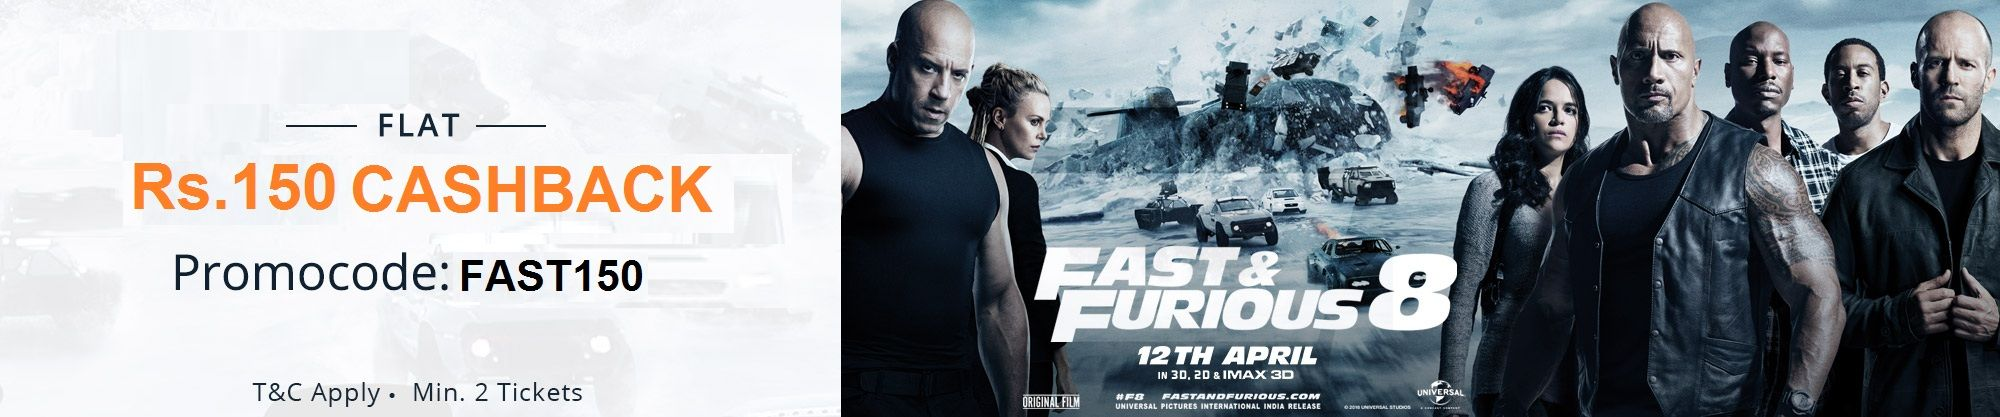 Fast and furious 8 movie paytm offers get 50 upto rs